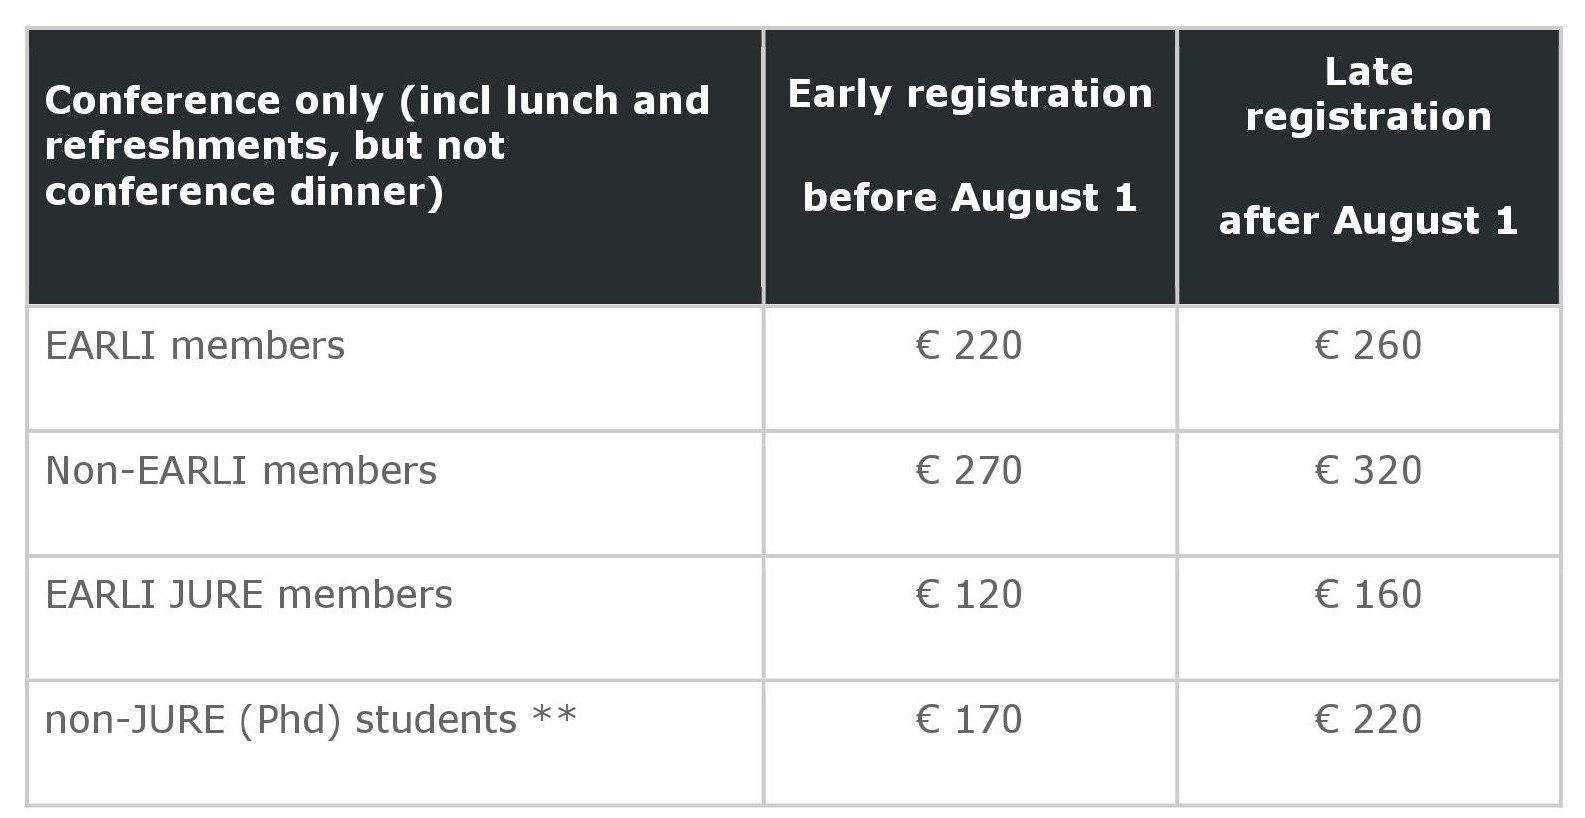 Fees for the conference ticket only (without the dinner). From € 120 for early bird JURE members to € 320 Non-EARLI members late registration.